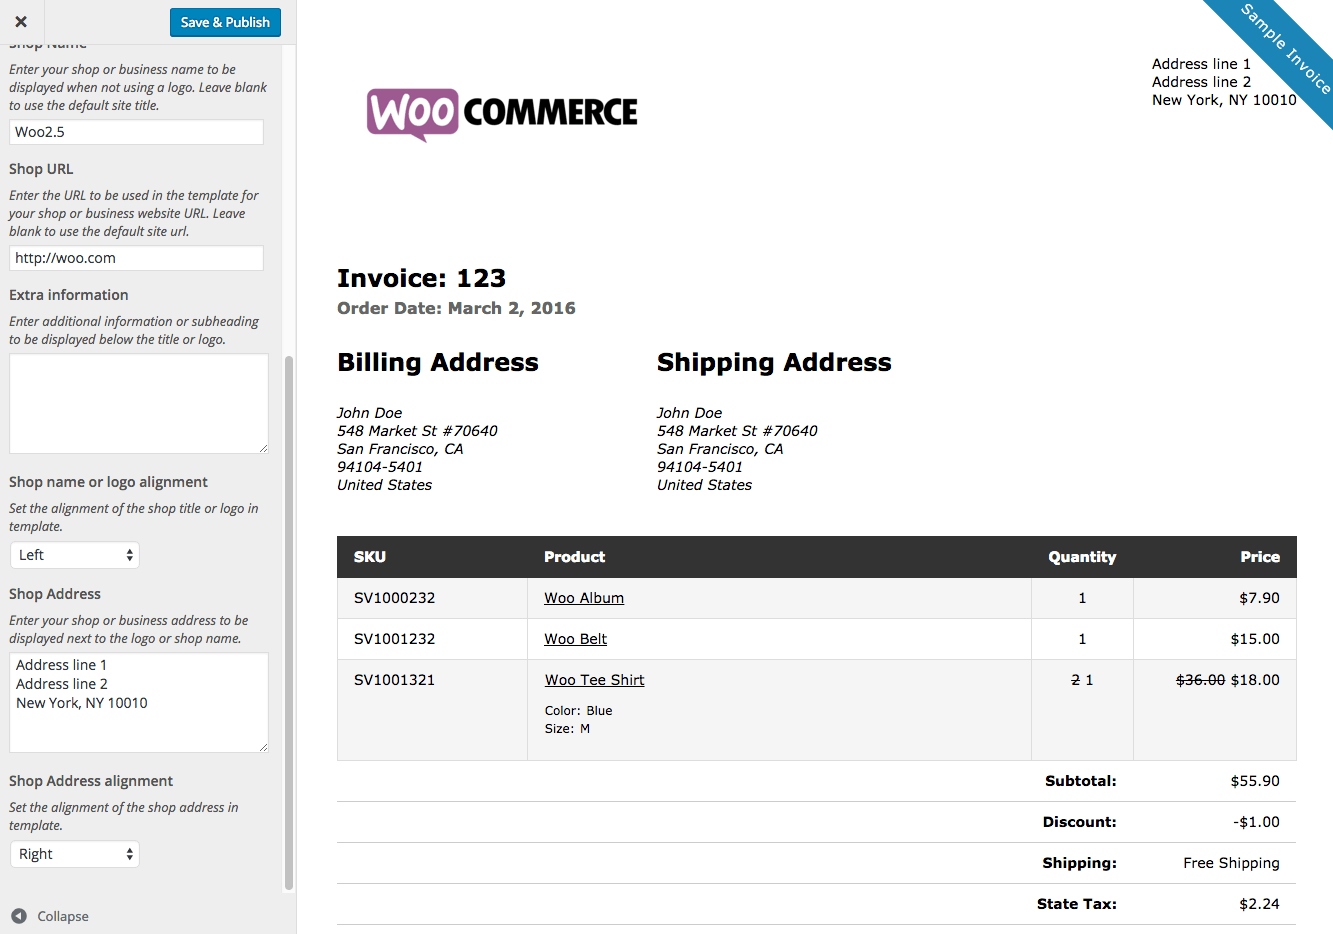 Ultrablogus  Marvellous Woocommerce Print Invoices Amp Packing Lists  Woocommerce Docs With Excellent Woocommerce Print Invoices  Packing Lists Customizer With Nice Receipt Html Template Also Acknowledgement Receipt Of Payment Template In Addition Toys R Us Returns Policy Without A Receipt And Delivery Receipt Format As Well As Definition Of A Receipt Additionally Receipt Template Word  From Docswoocommercecom With Ultrablogus  Excellent Woocommerce Print Invoices Amp Packing Lists  Woocommerce Docs With Nice Woocommerce Print Invoices  Packing Lists Customizer And Marvellous Receipt Html Template Also Acknowledgement Receipt Of Payment Template In Addition Toys R Us Returns Policy Without A Receipt From Docswoocommercecom